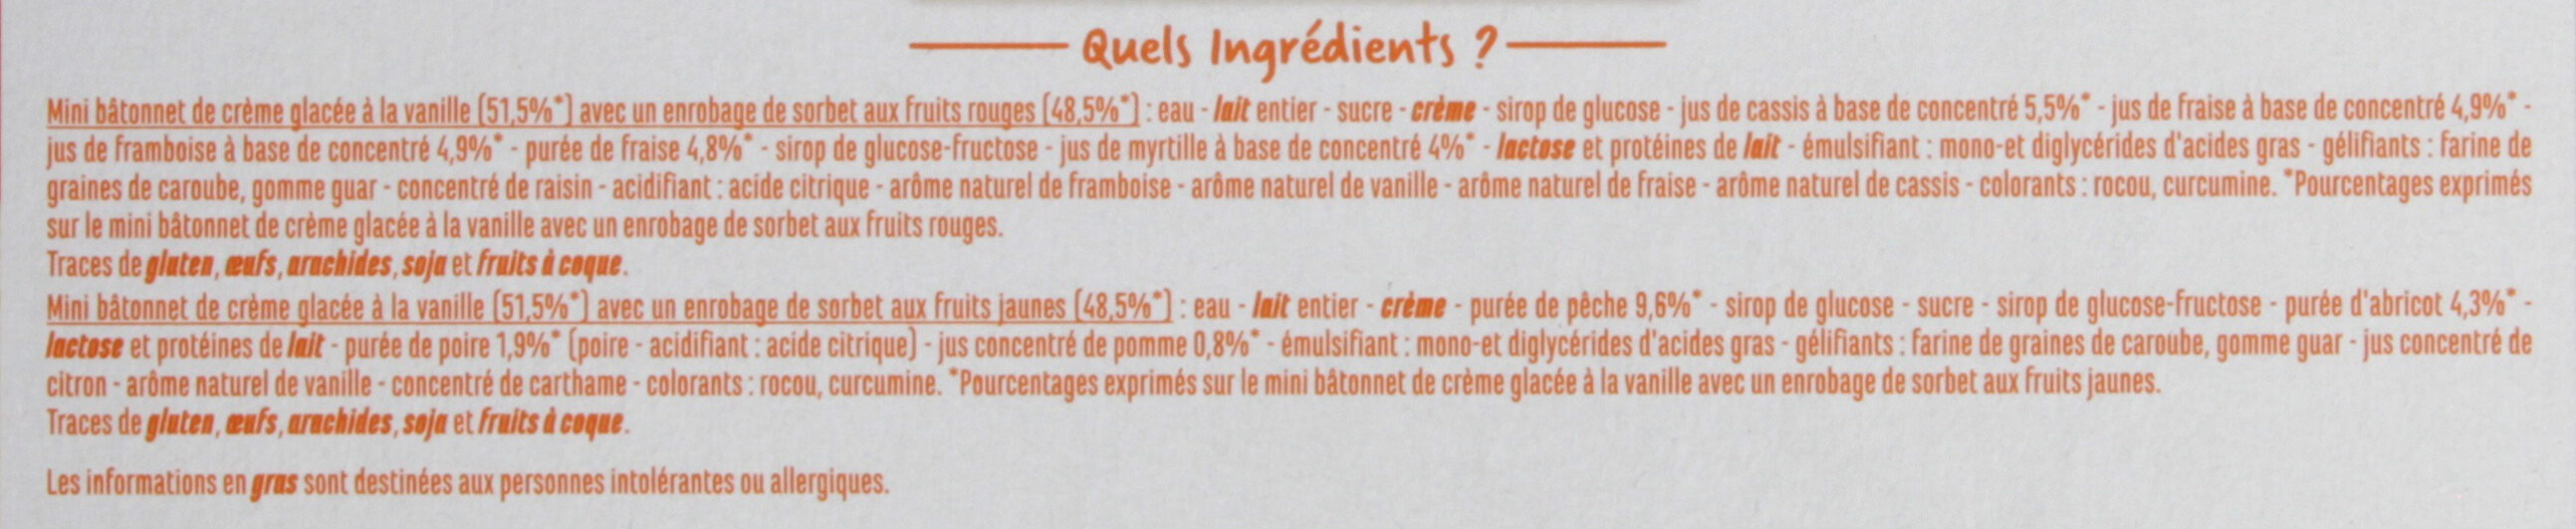 Les minis Vanille enrobage sorbets fruits rouges-fruits jaunes x8 - Ingredients